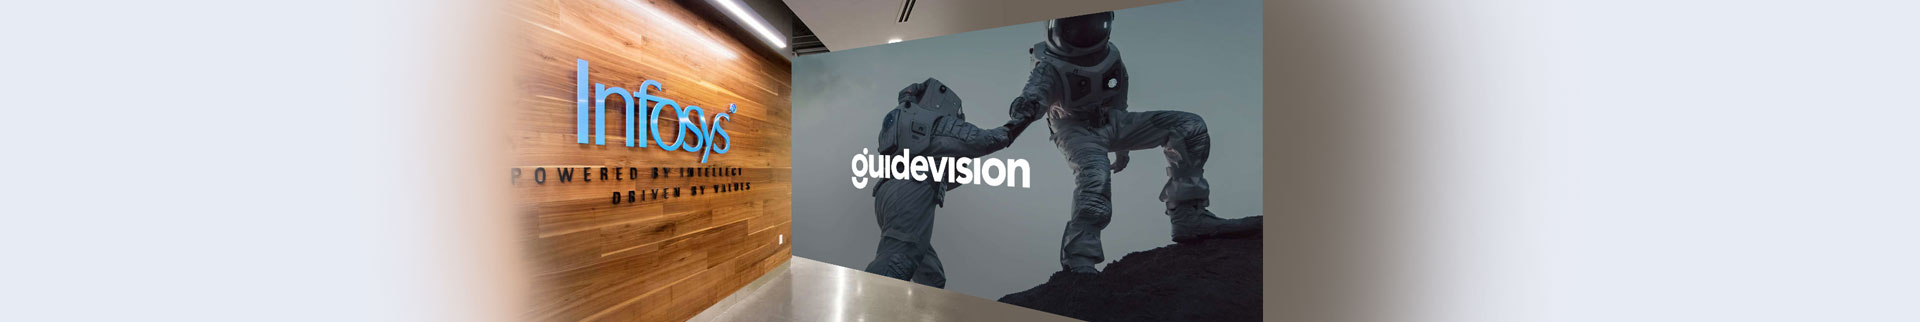 Infosy- acquisition- GuideVision